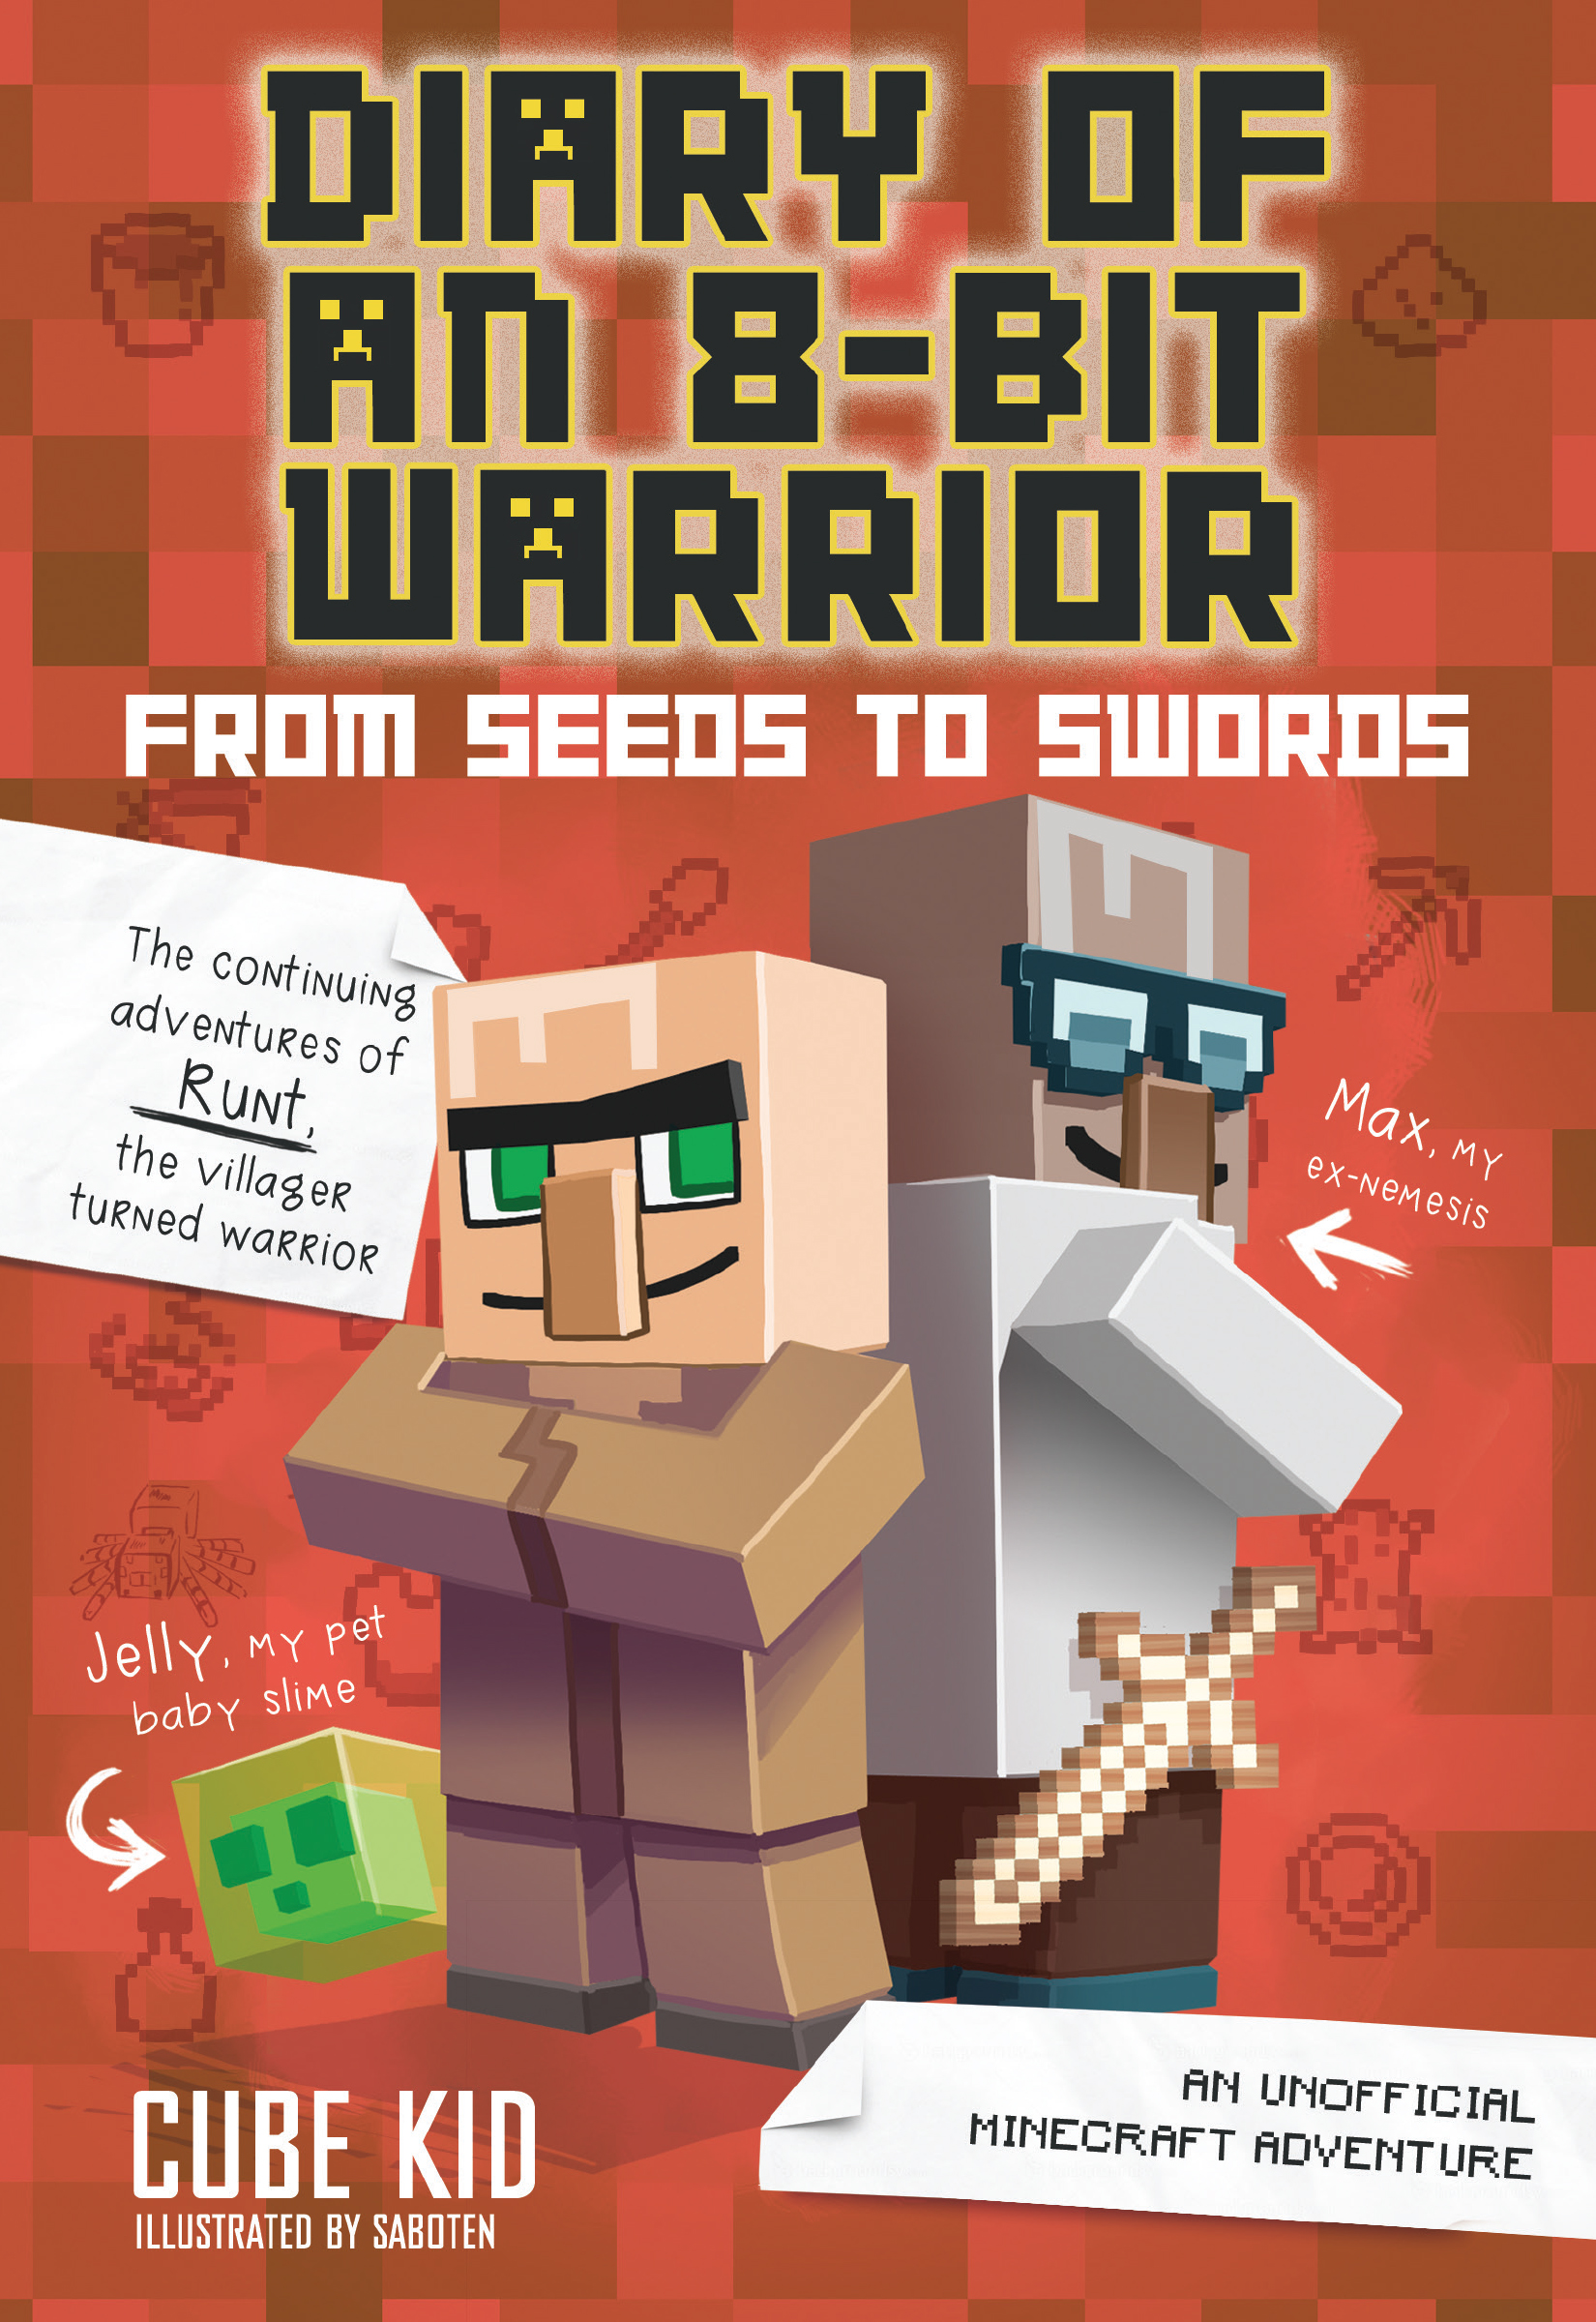 Diary of an 8-Bit Warrior: From Seeds to Swords An Unofficial Minecraft Adventure